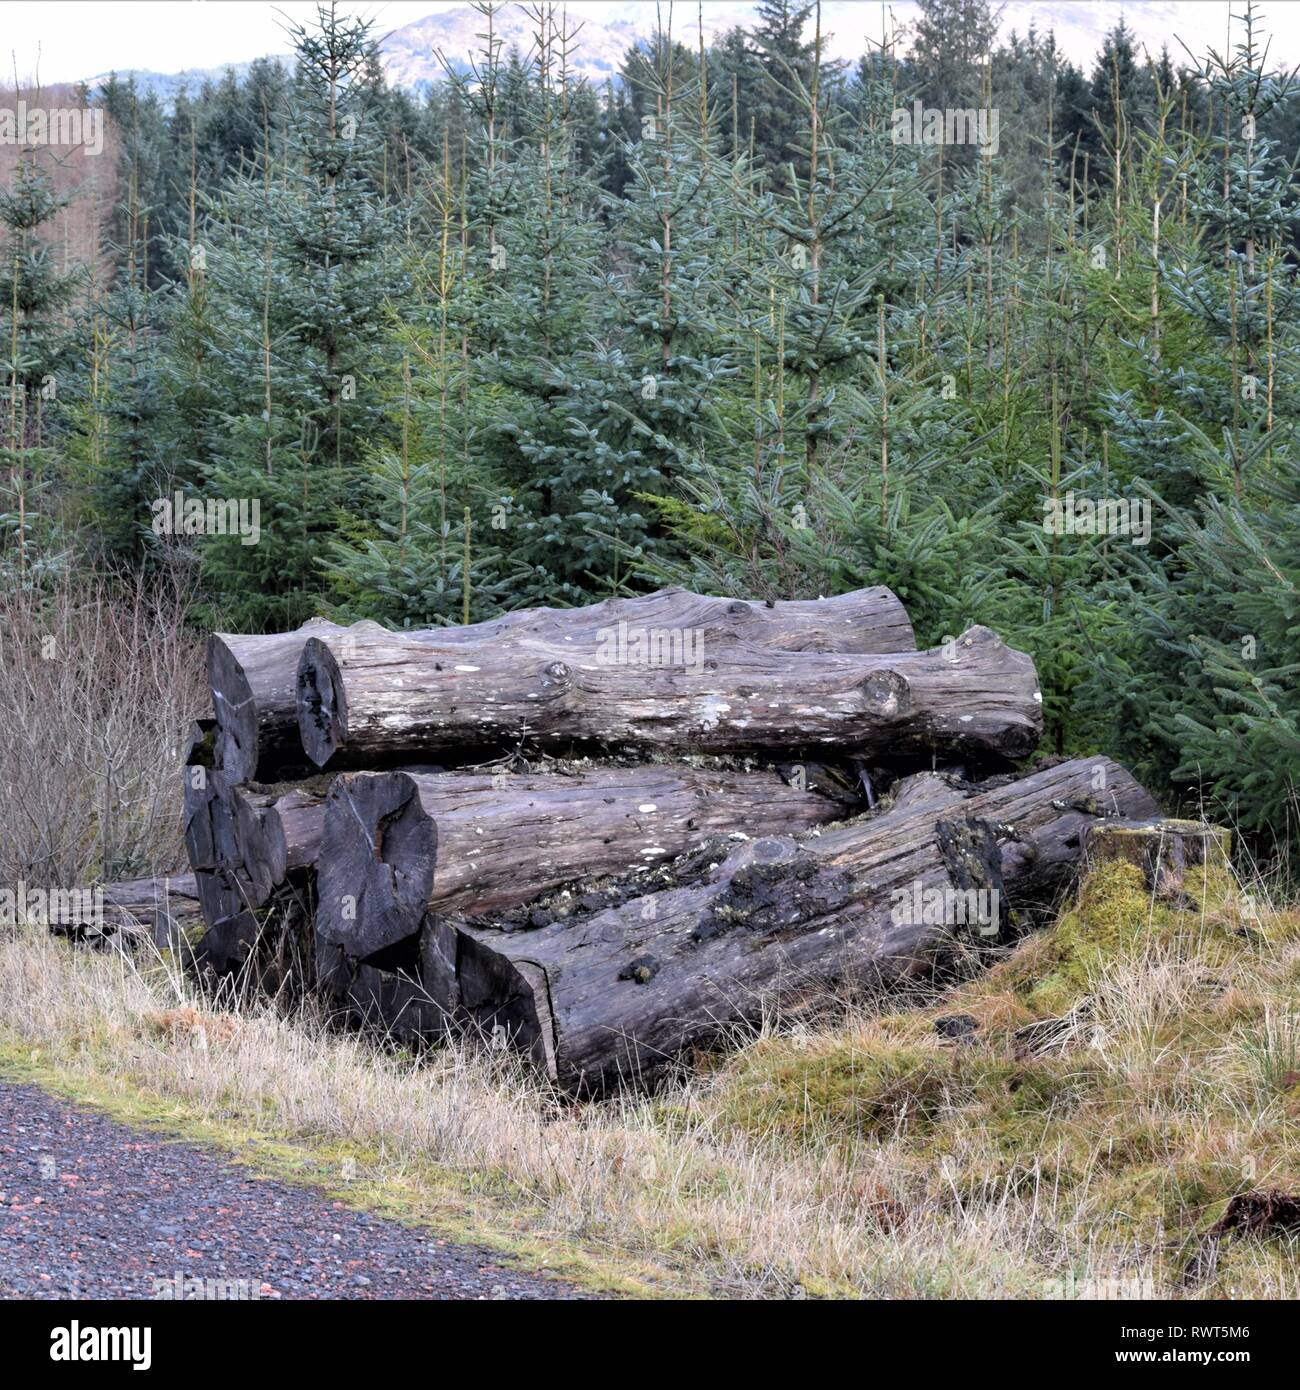 Young Sitka Spruce plantation contrasted with pile of peeled, decaying, ugly log stack at Forestry Commission roadside. Snow on the hills. - Stock Image